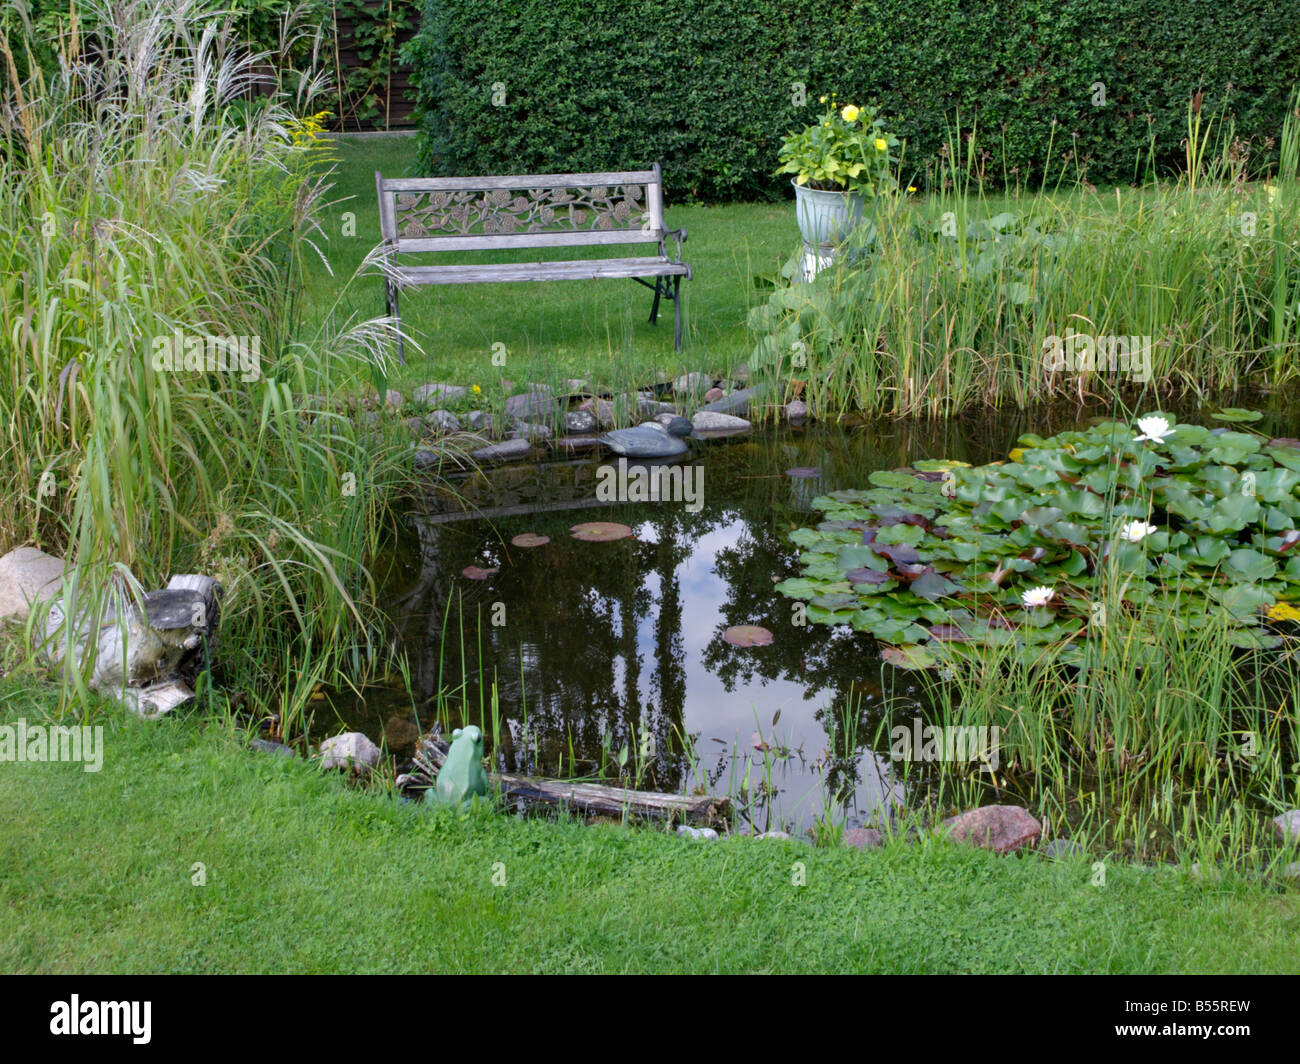 Garden pond with bench - Stock Image